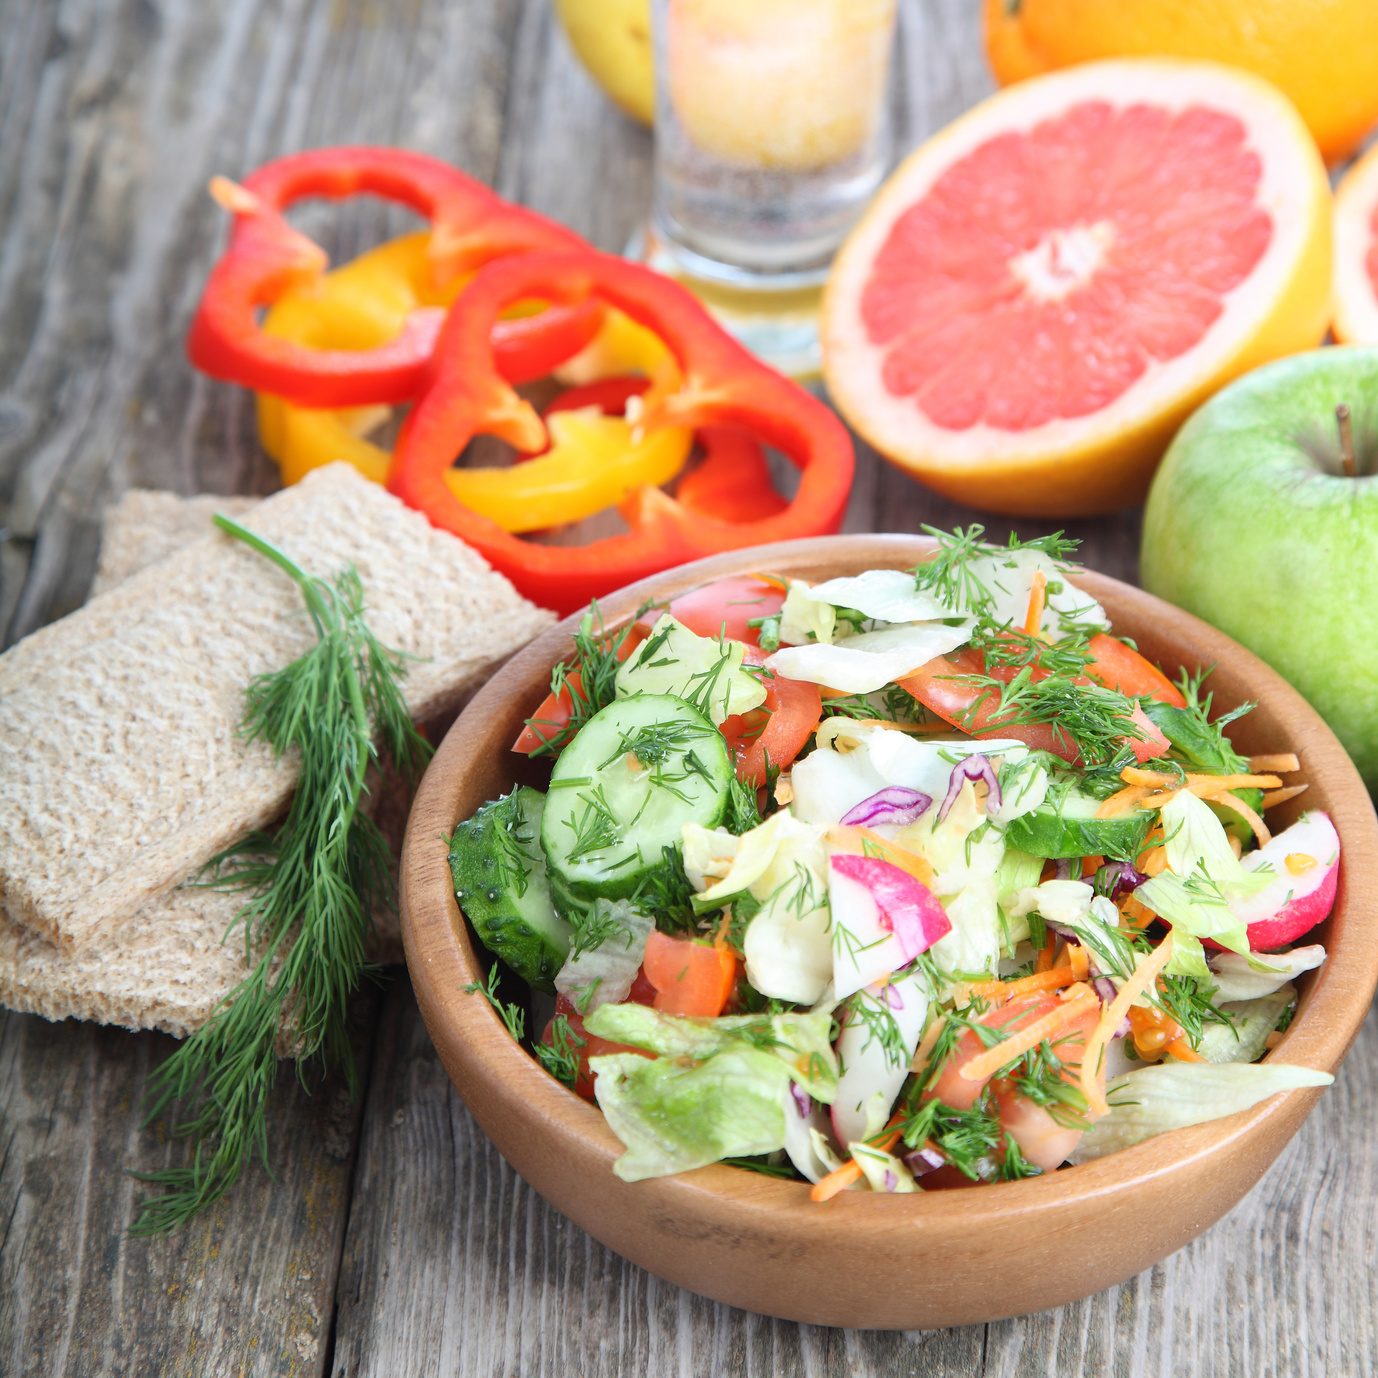 Healthy food for diet on a wooden table .